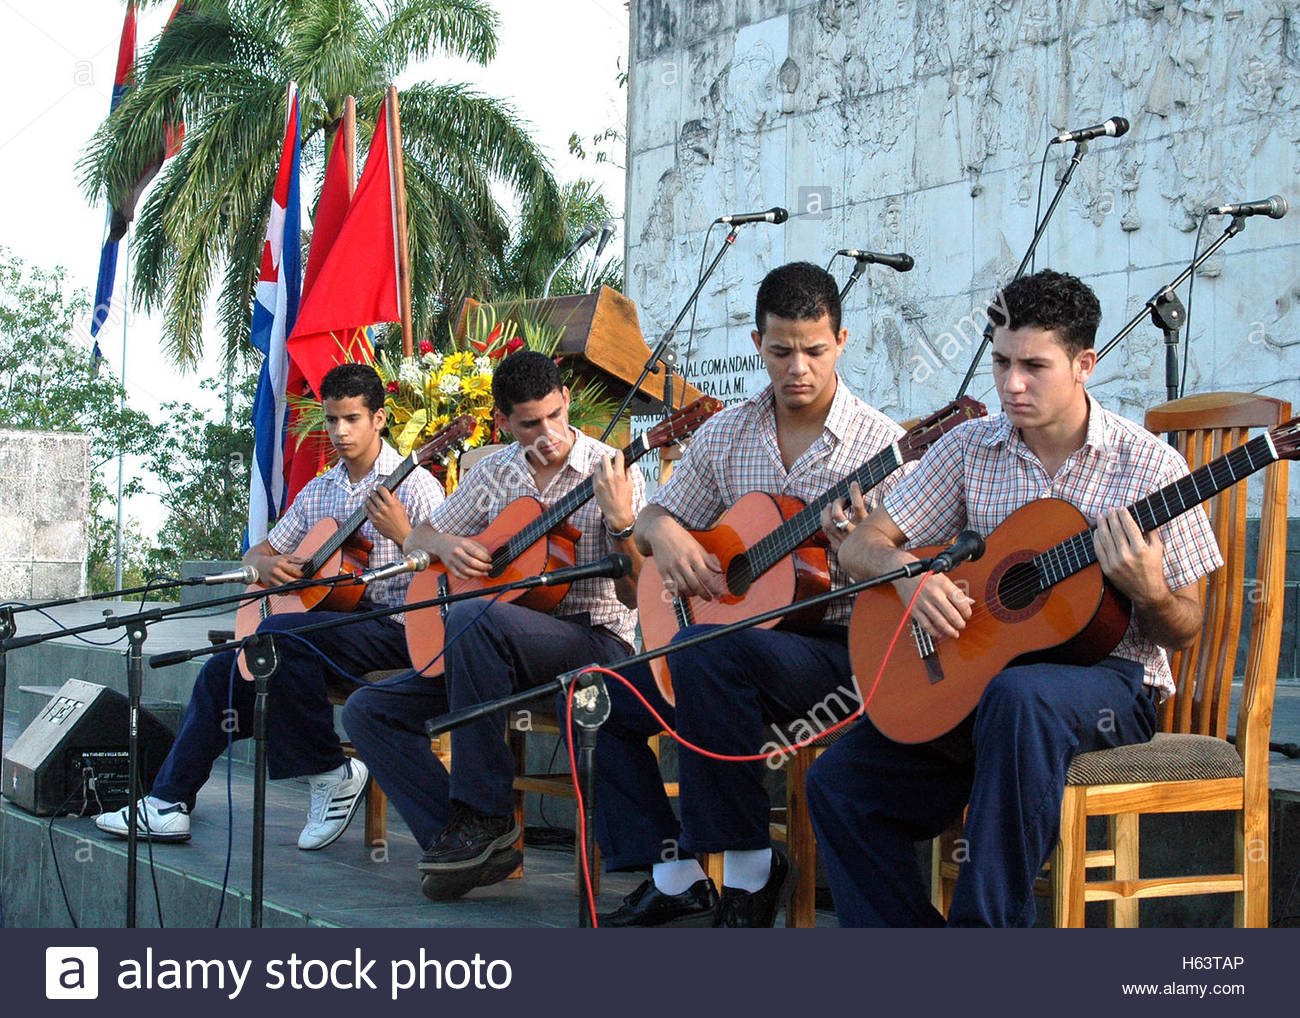 National Art School students playing in an Anti Imperialist Open Forum in the Che Guevara Memorial. A group of young - Stock Image